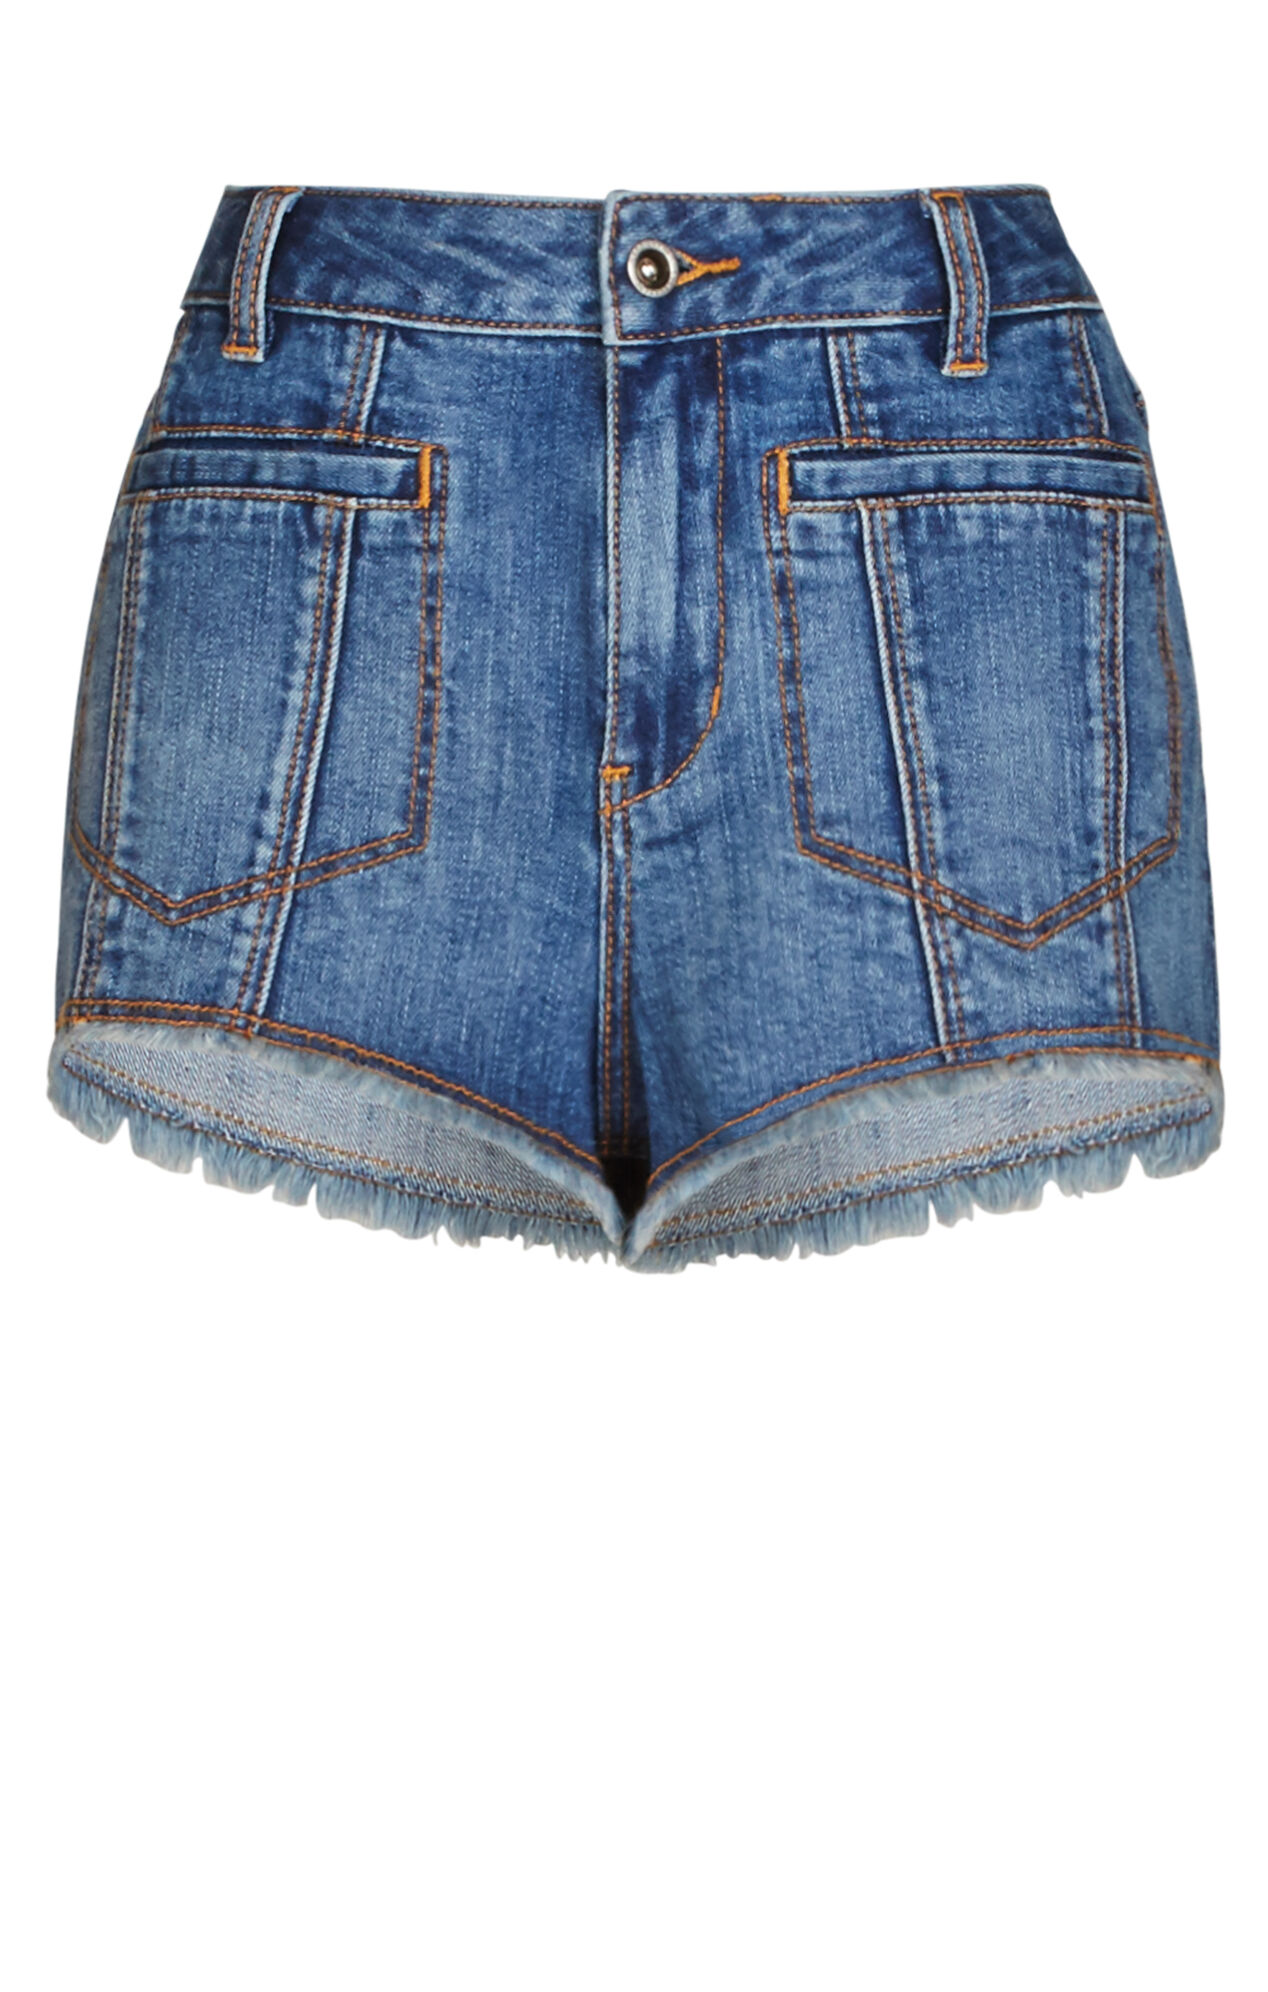 Franko Cutoff Denim Shorts